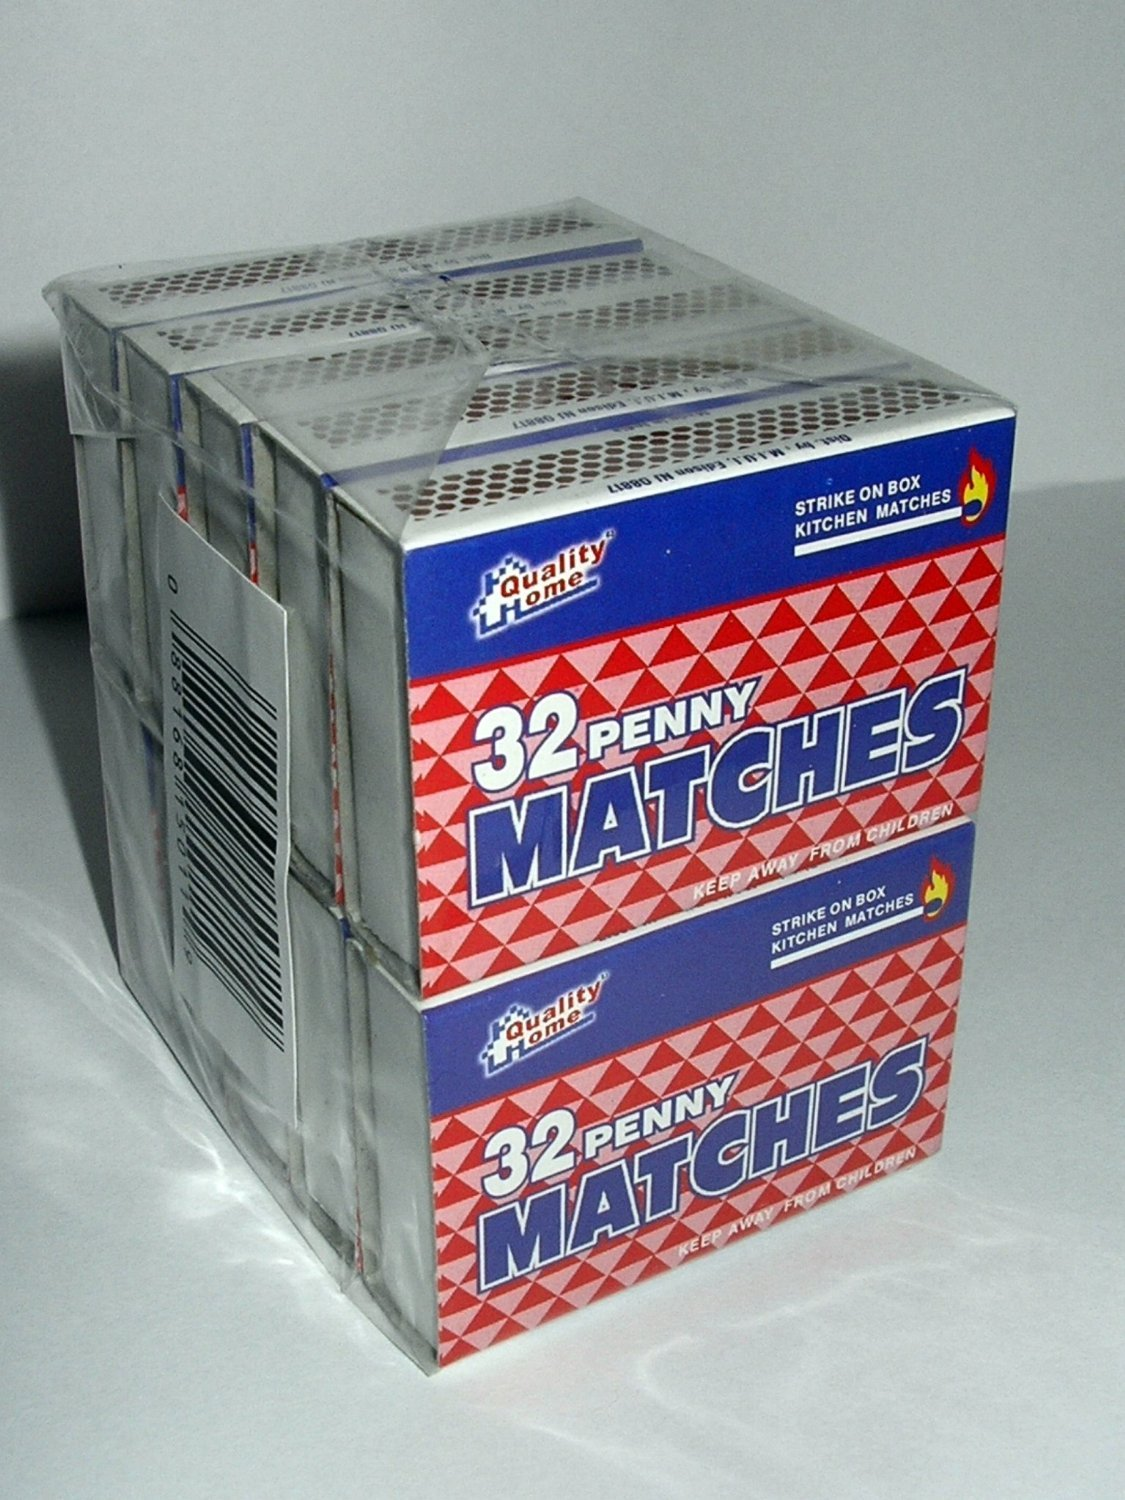 10 Boxes - Wooden Kitchen Matches, Strike On Box type Quality Home